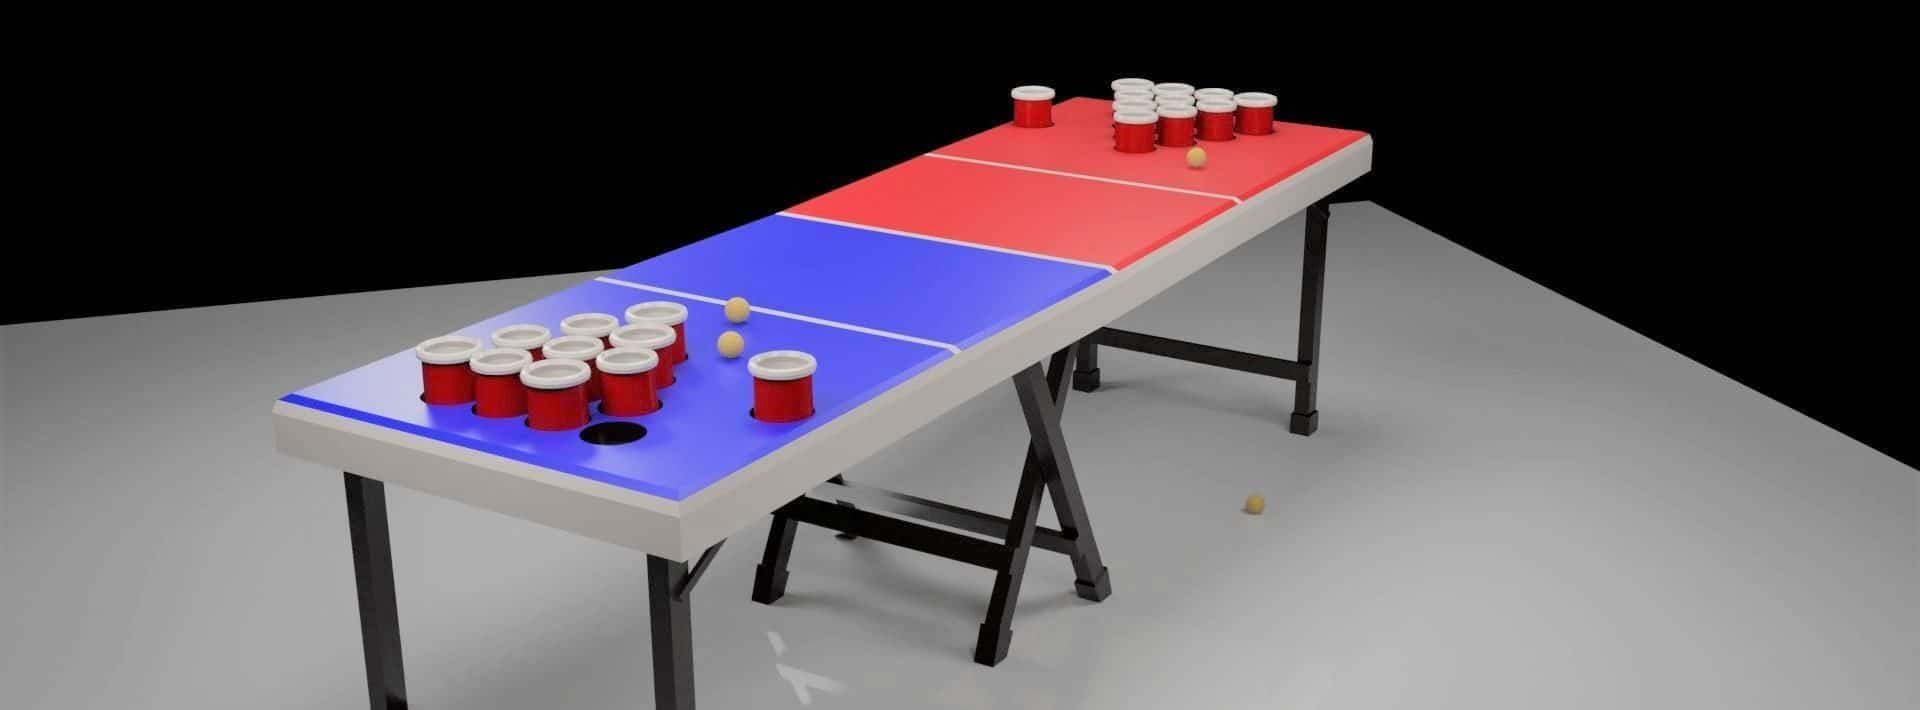 Best Beer Pong Tables Reviewed in Detail